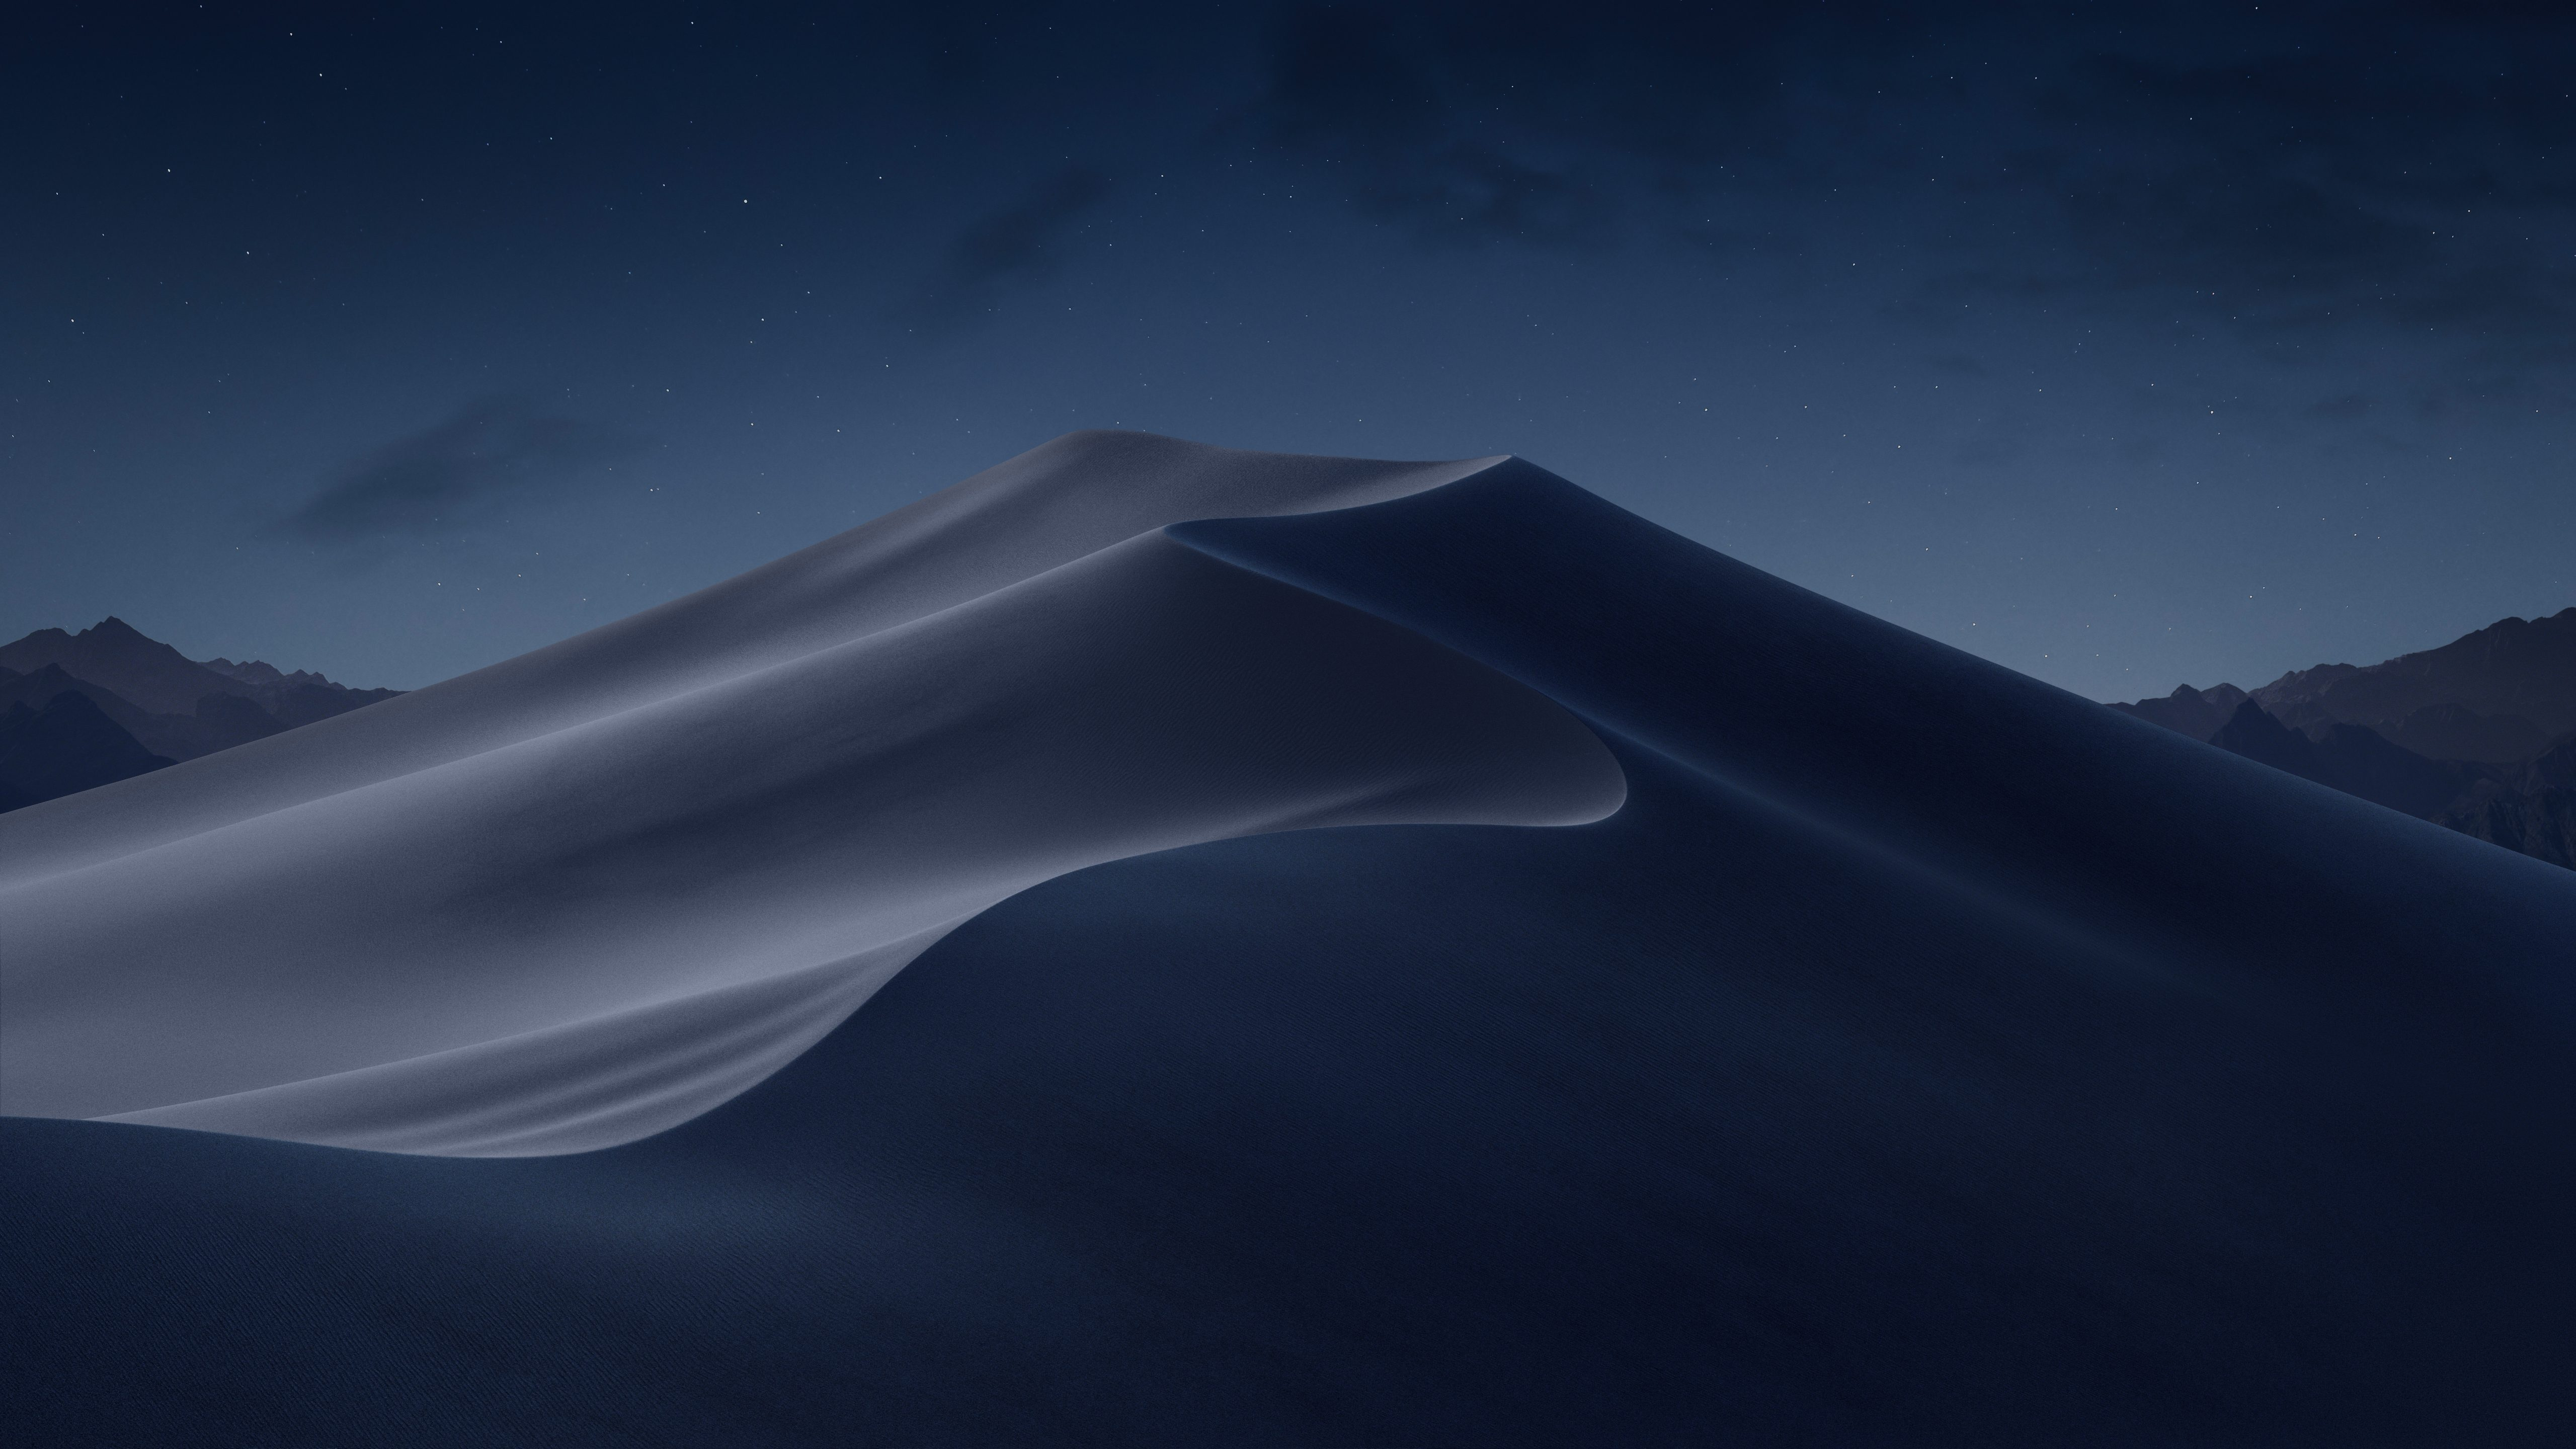 macOS Mojave includes two desert themed wallpapers download here 5120x2880